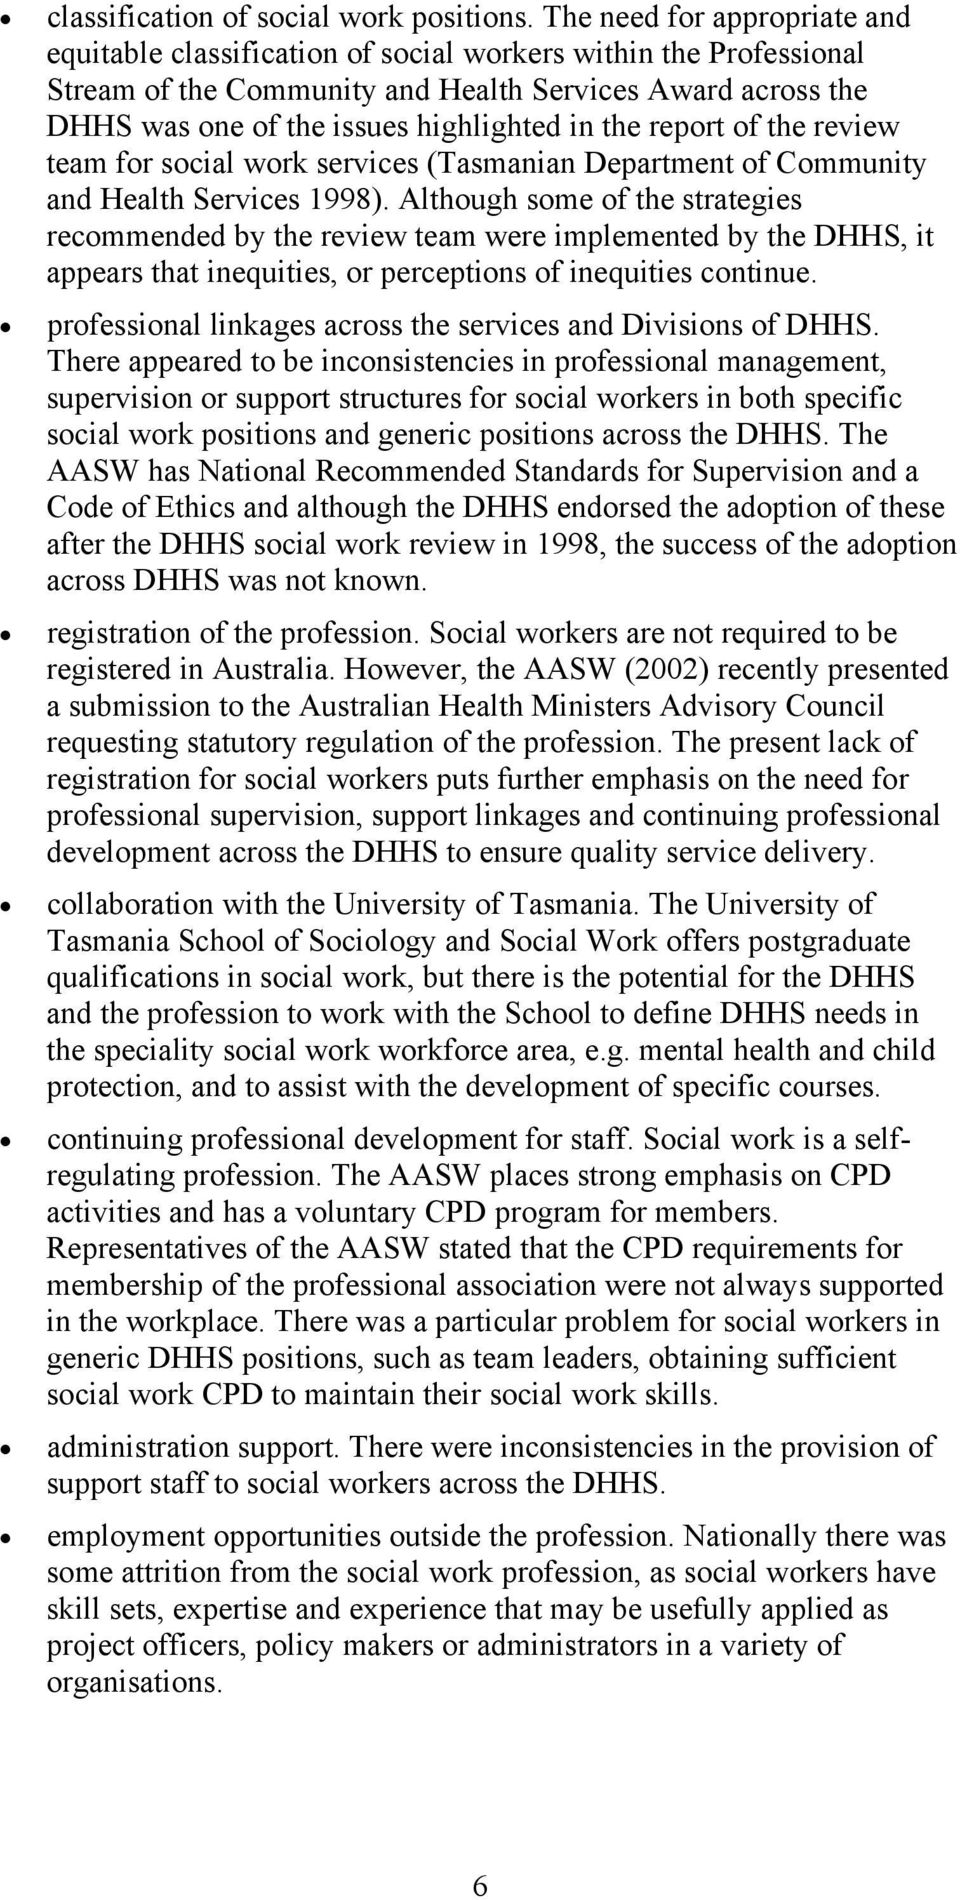 the report of the review team for social work services (Tasmanian Department of Community and Health Services 1998).